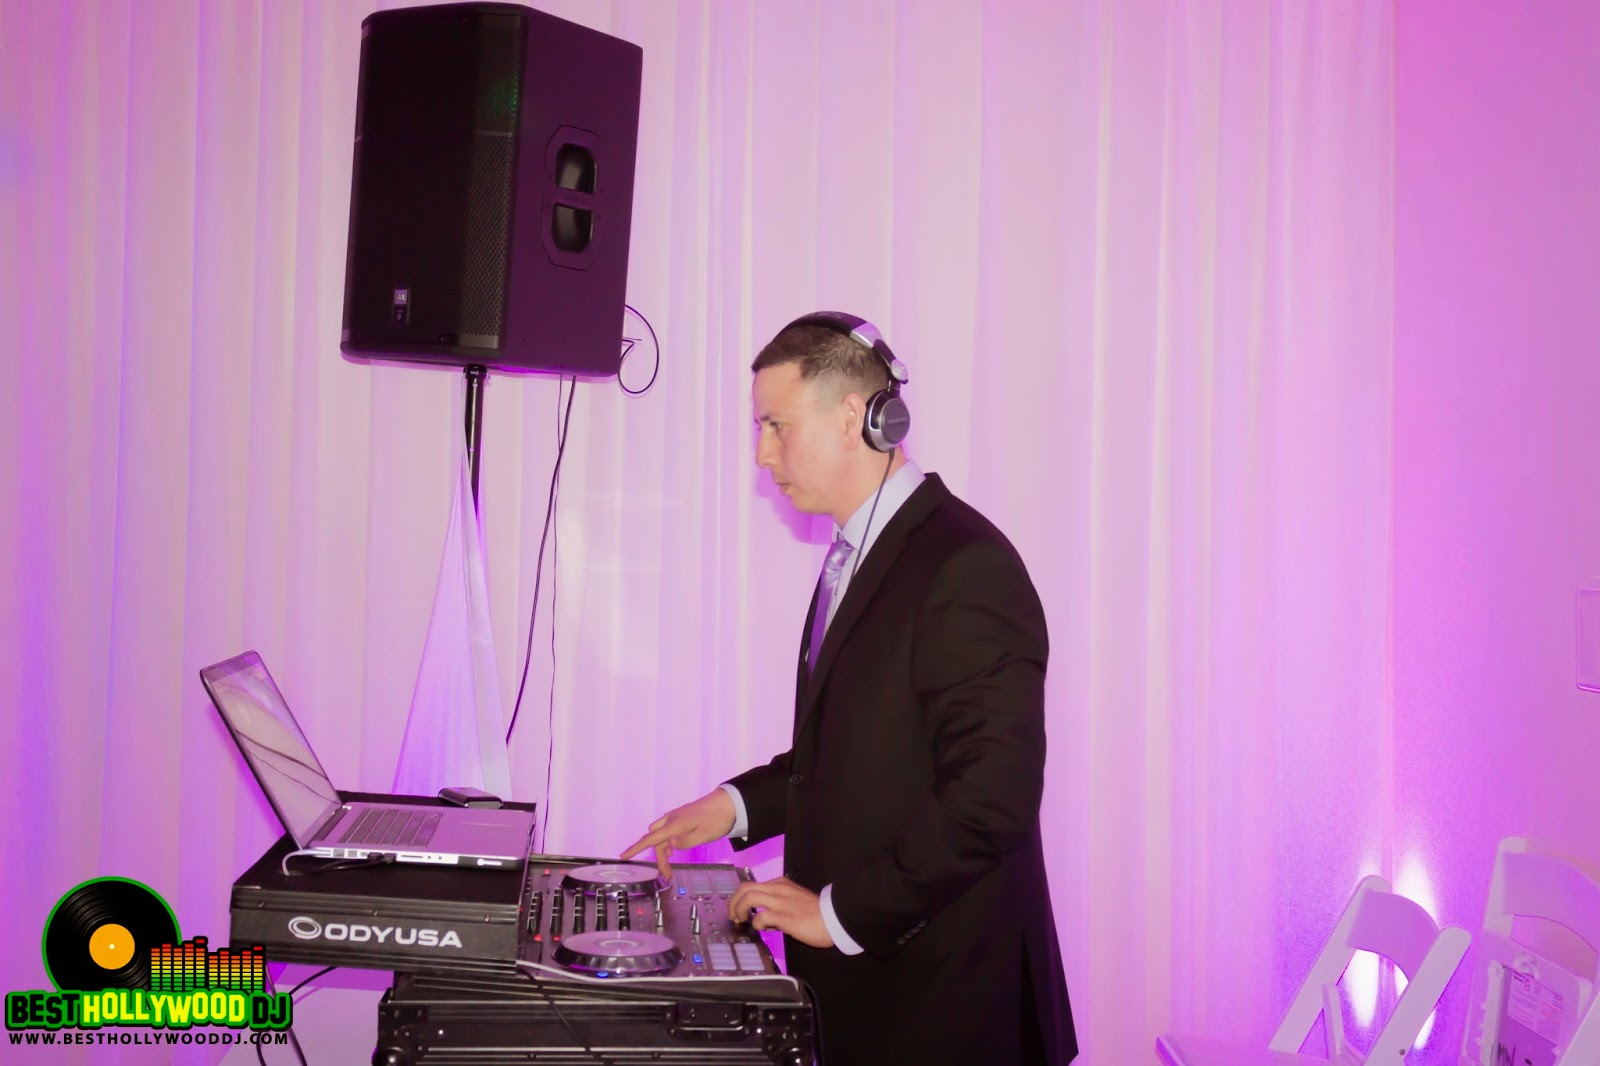 DJ, Malibu west beach club wedding, purple uplighting